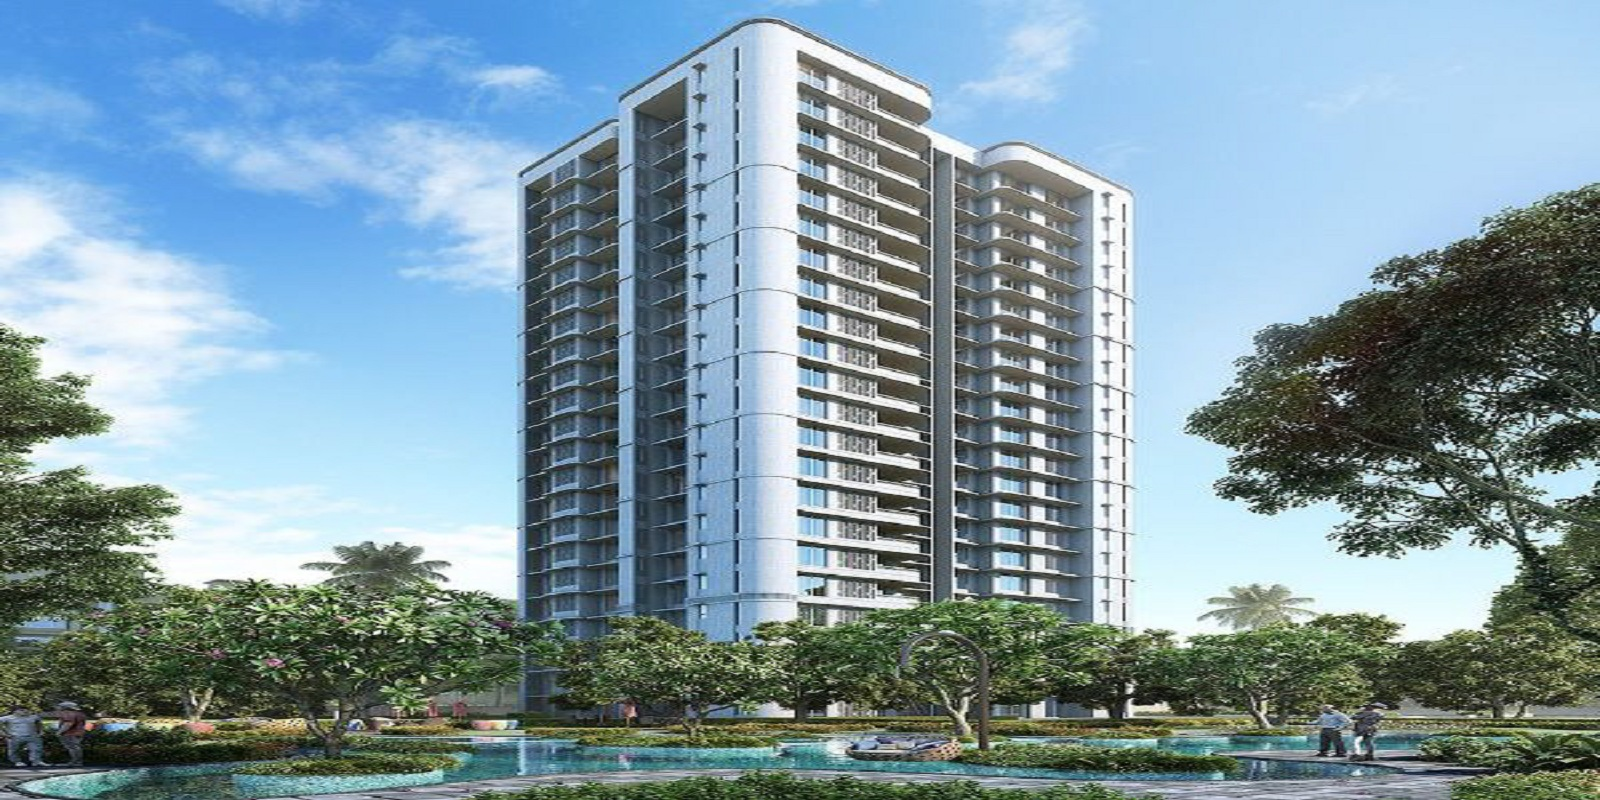 lodha patel estate tower c and d project large image2